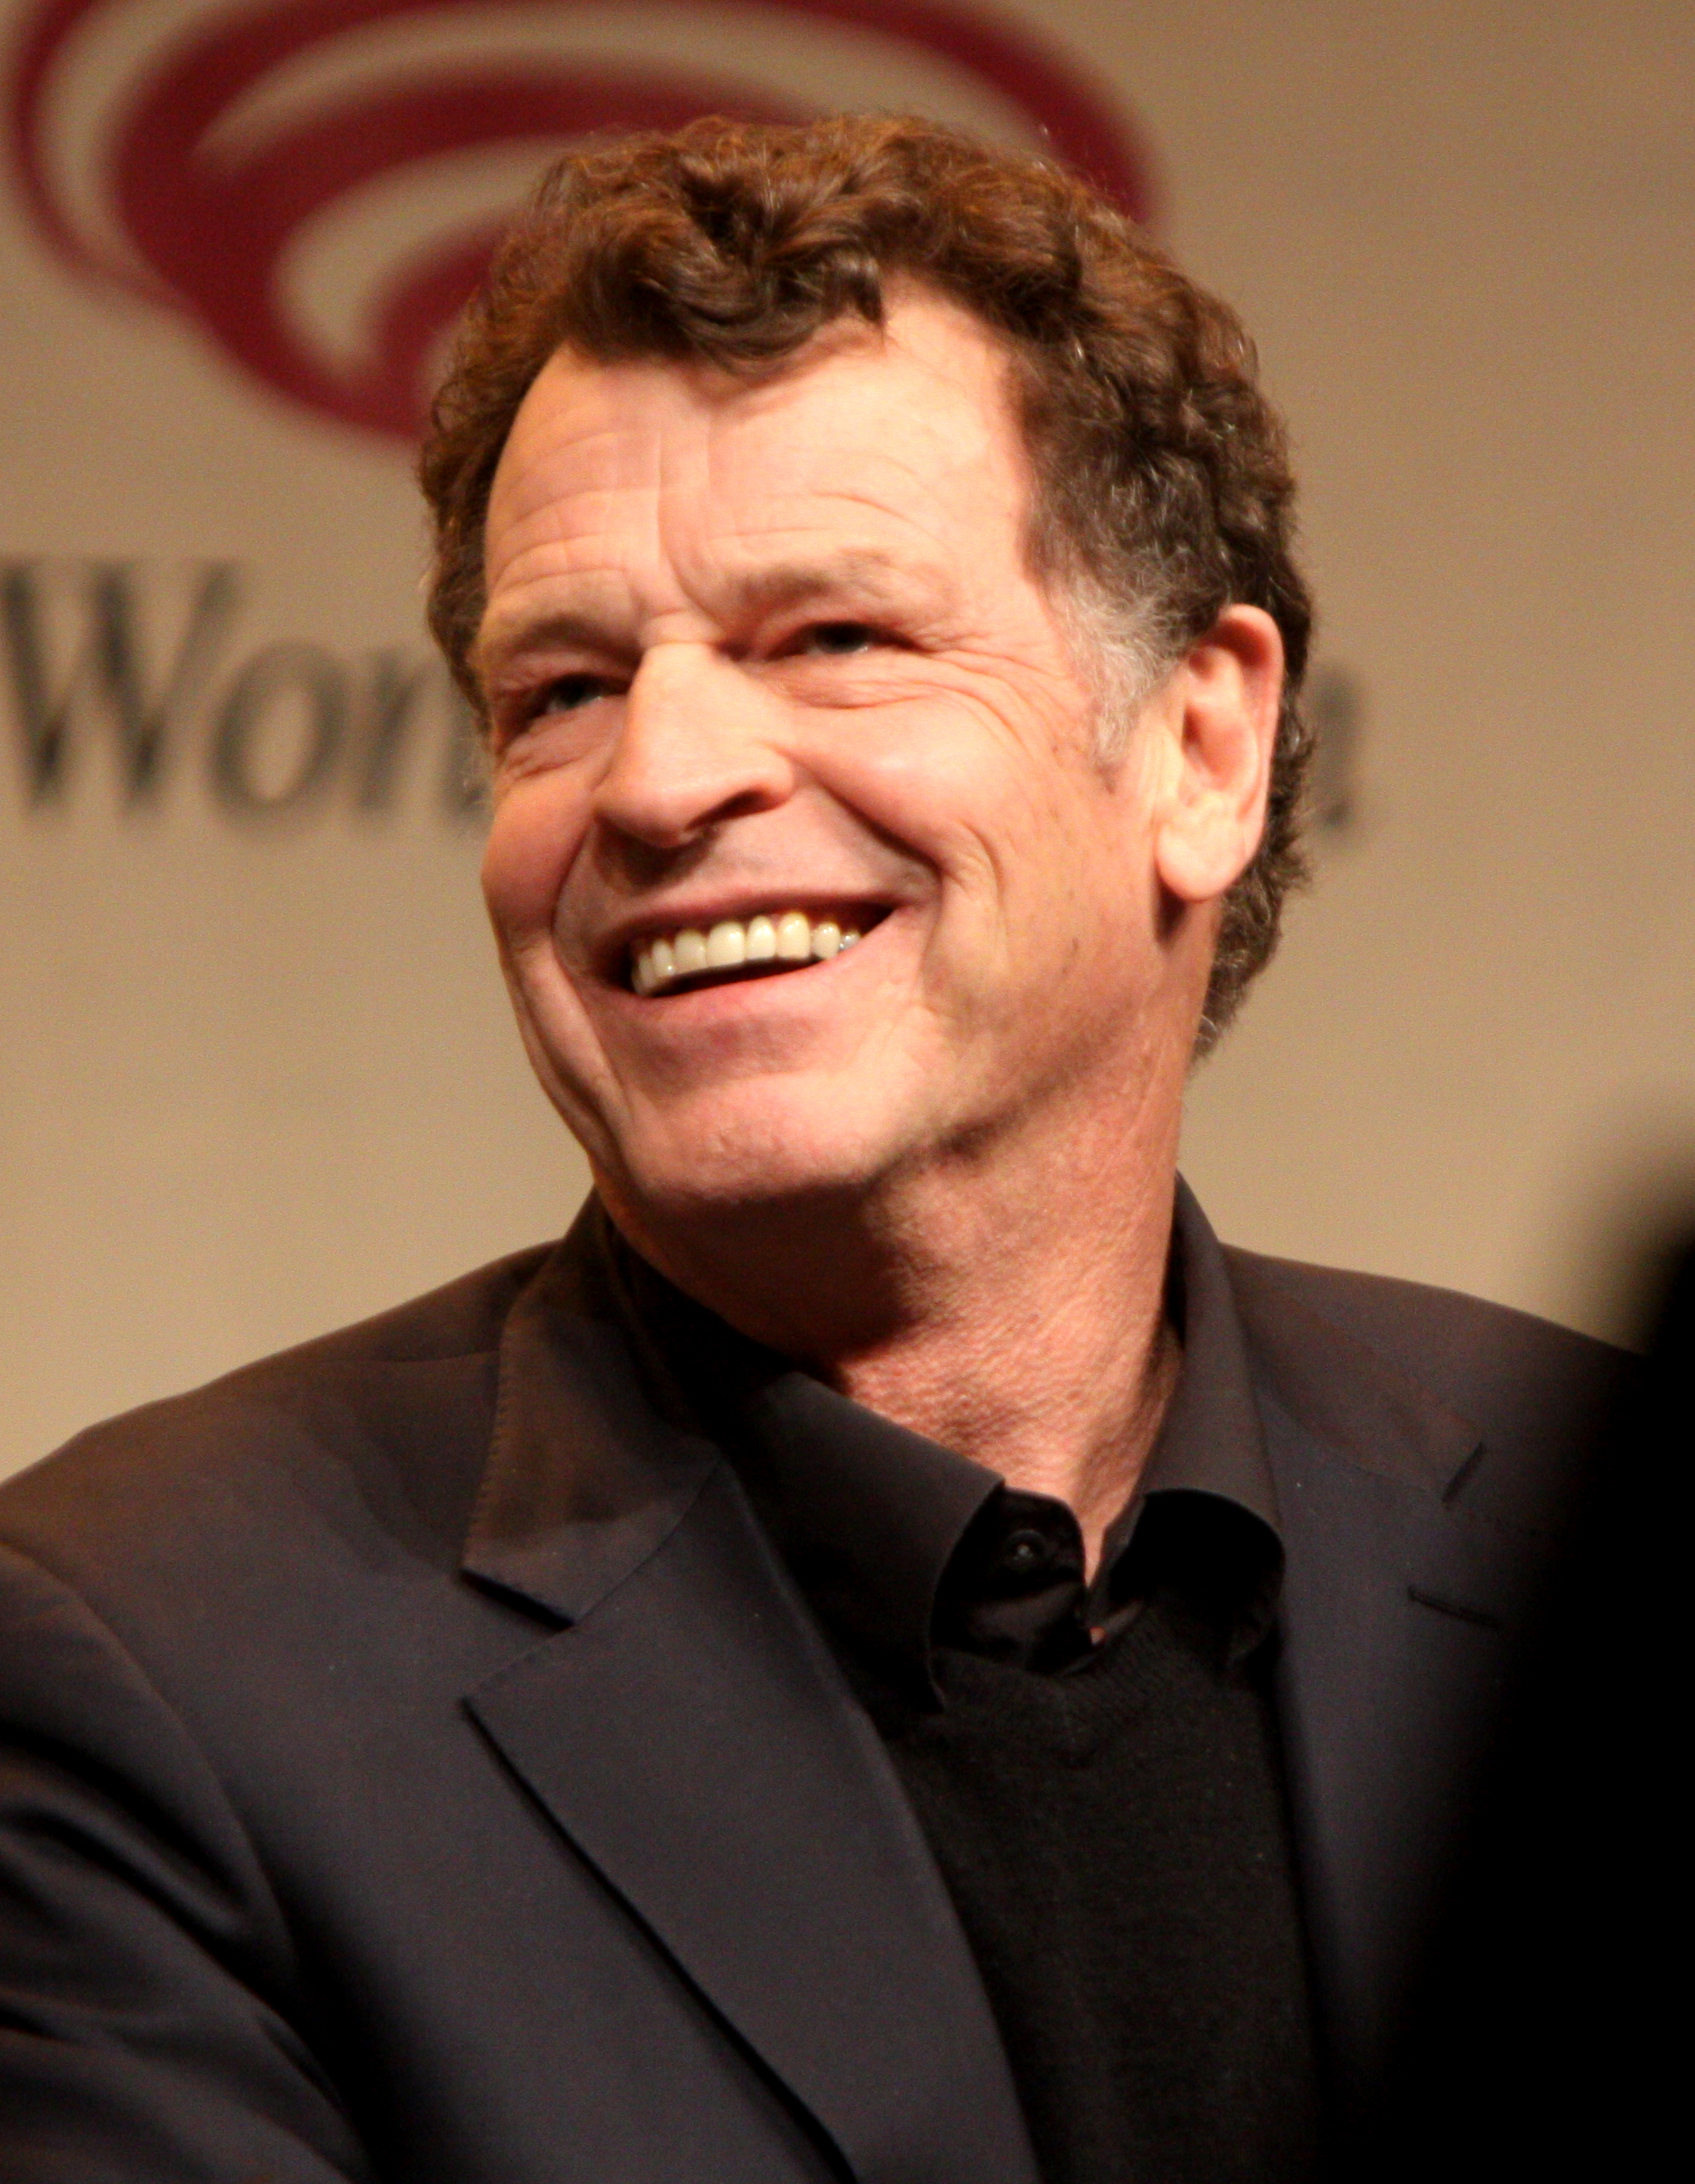 The 70-year old son of father (?) and mother(?) John Noble in 2018 photo. John Noble earned a  million dollar salary - leaving the net worth at 3 million in 2018